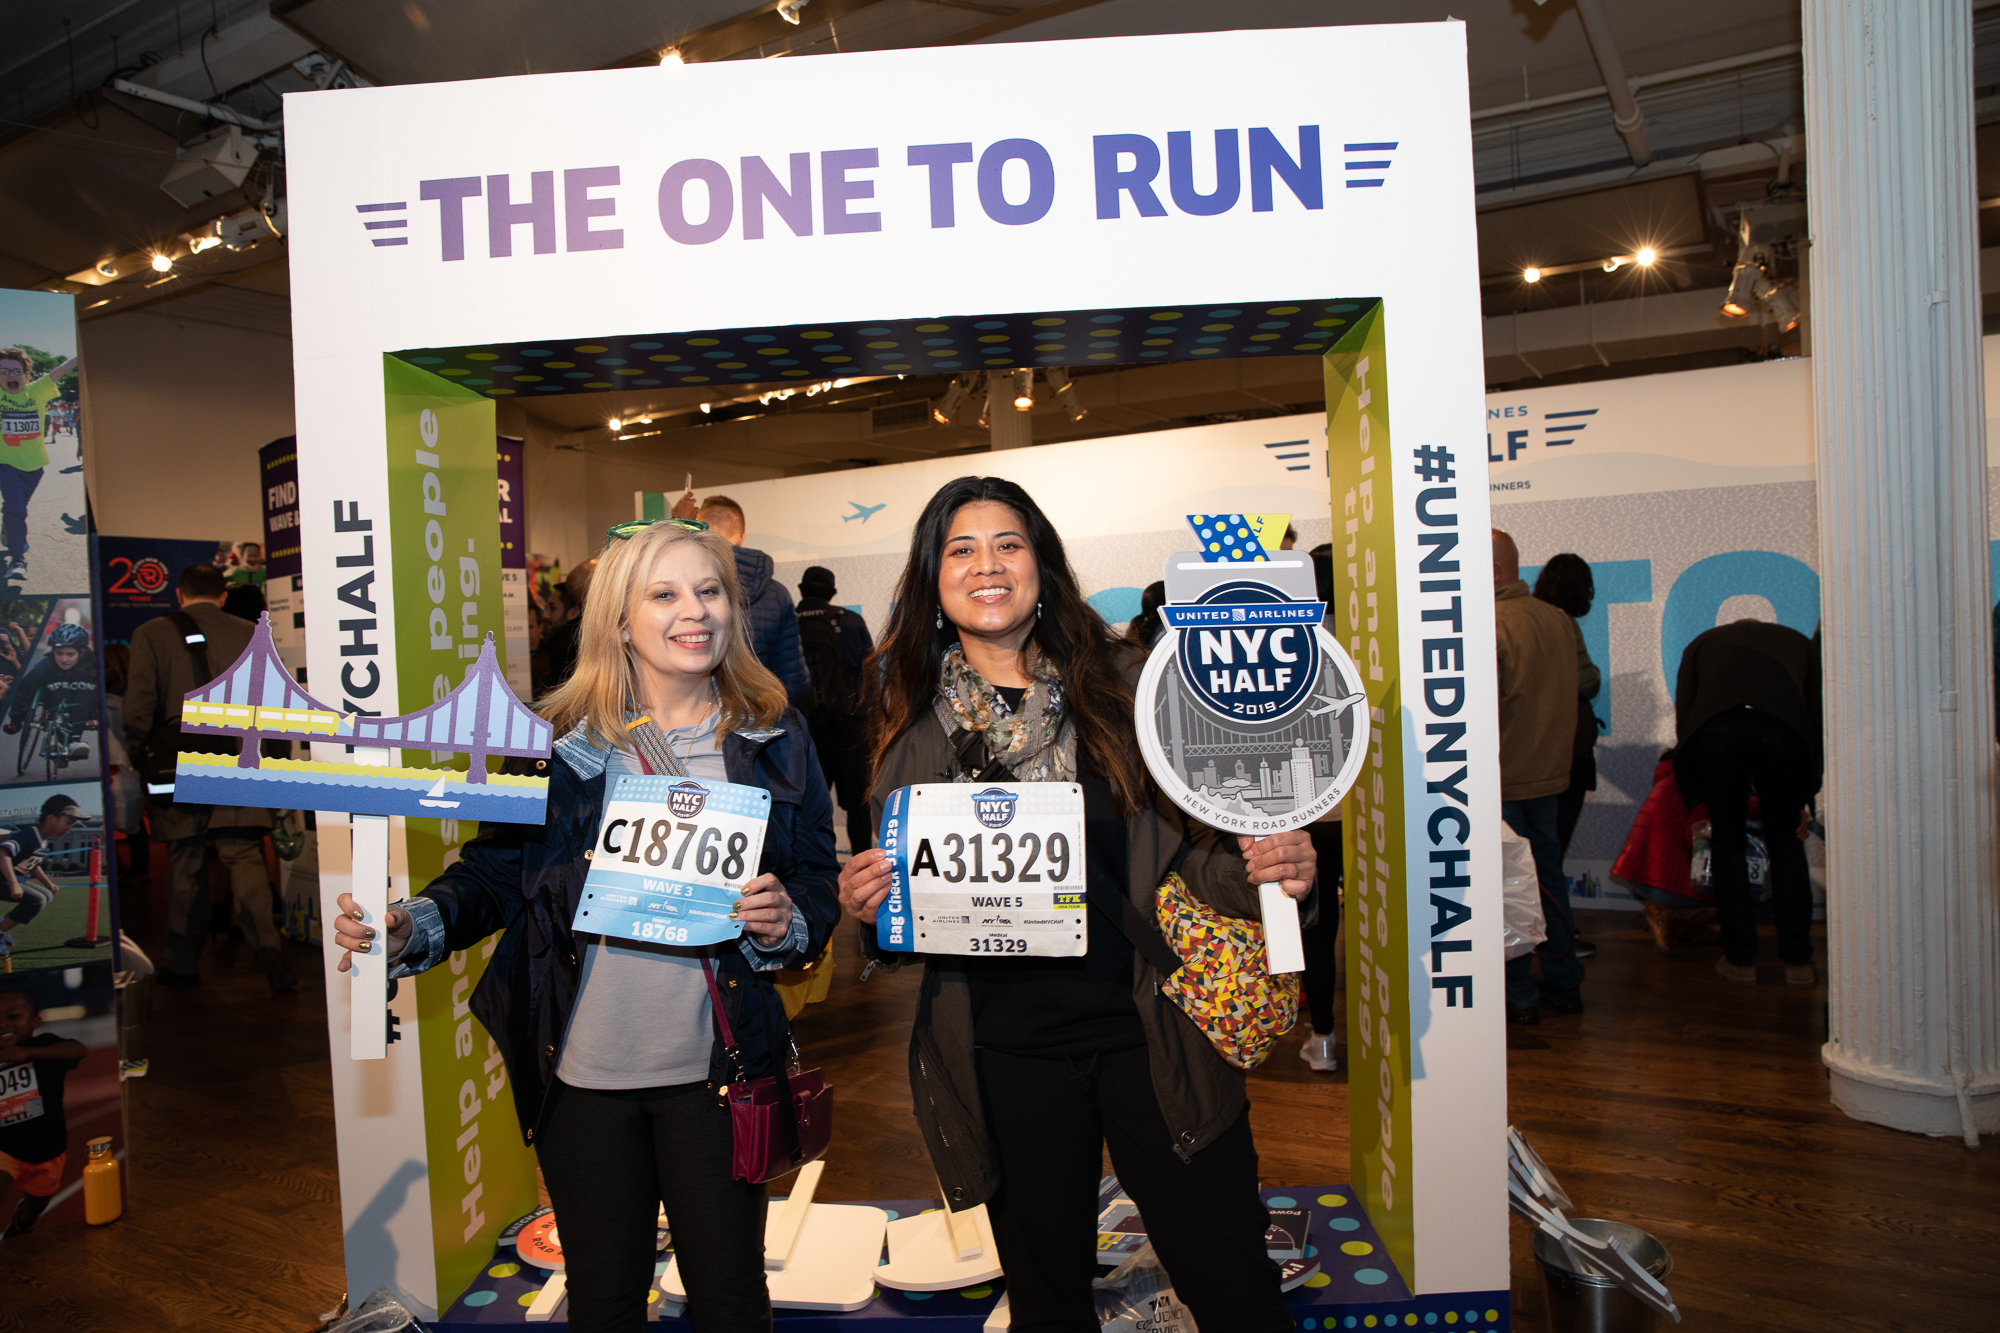 Two women at the United Airlines NYC Half expo